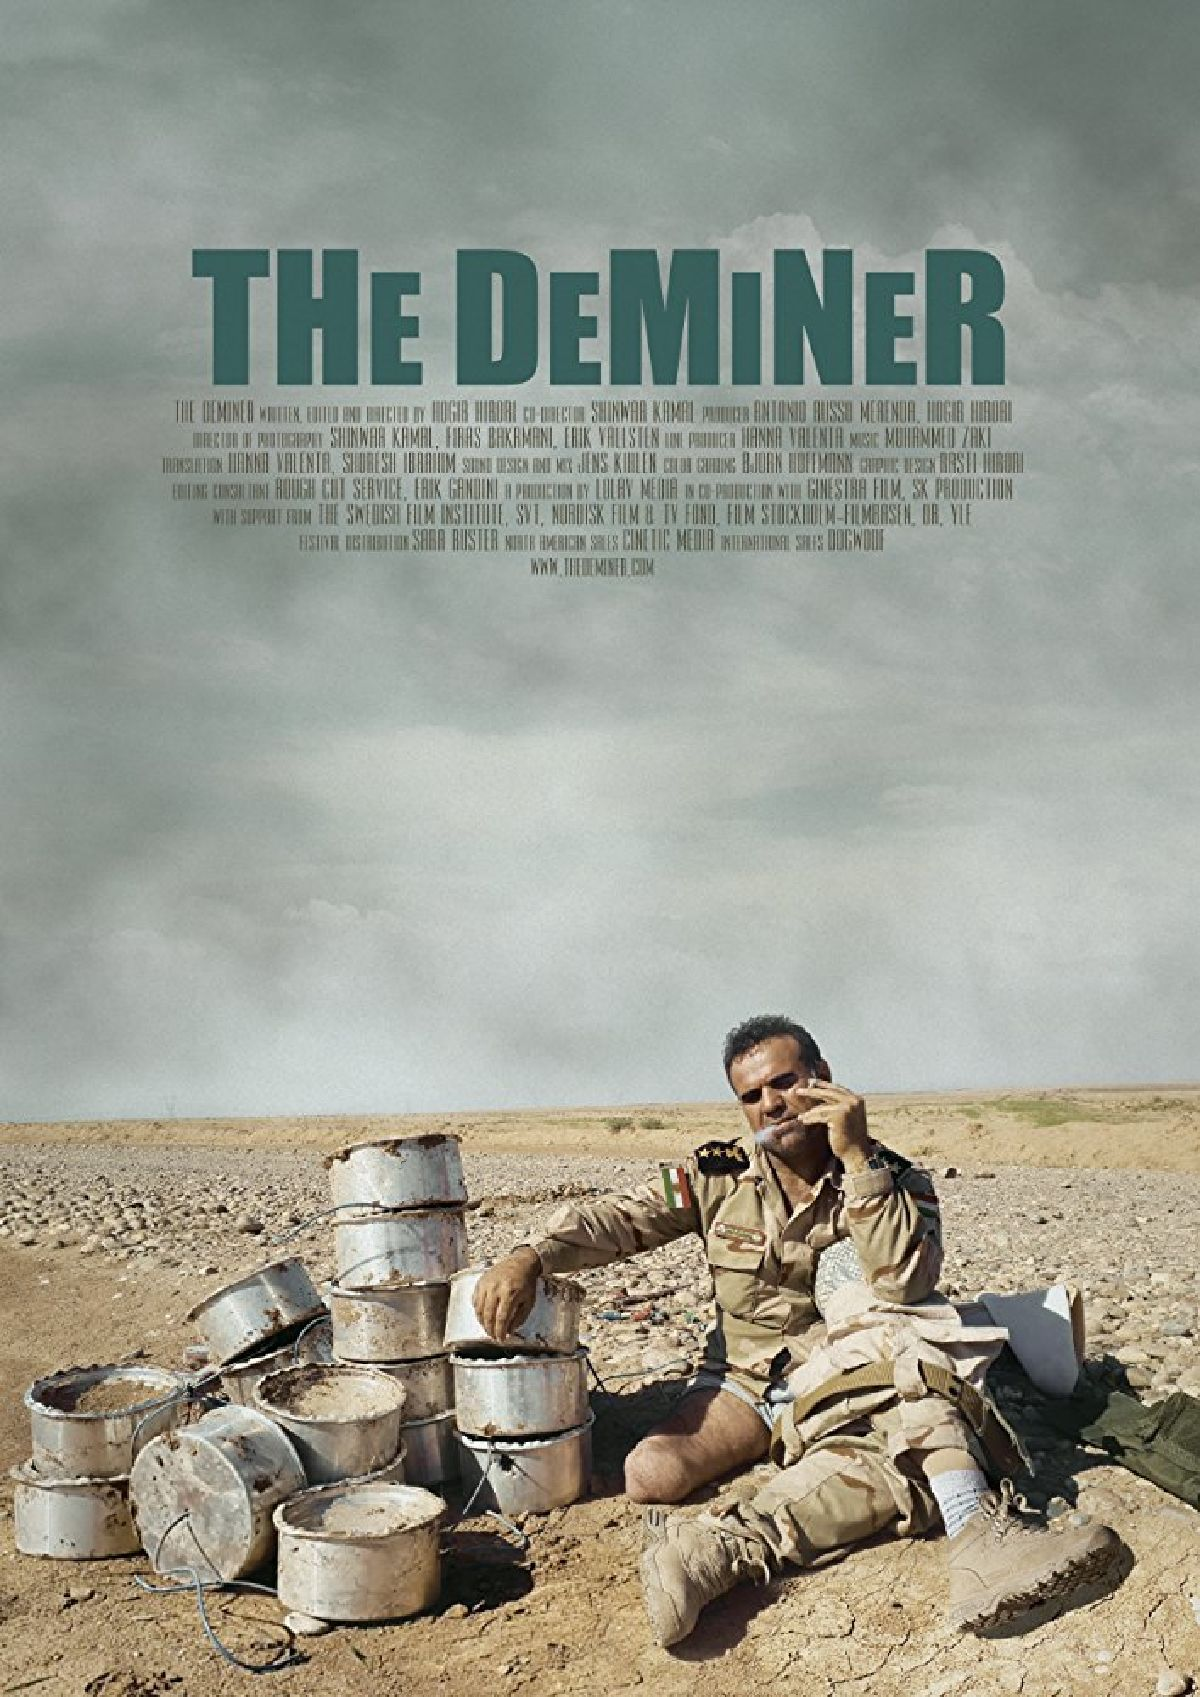 'The Deminer' movie poster